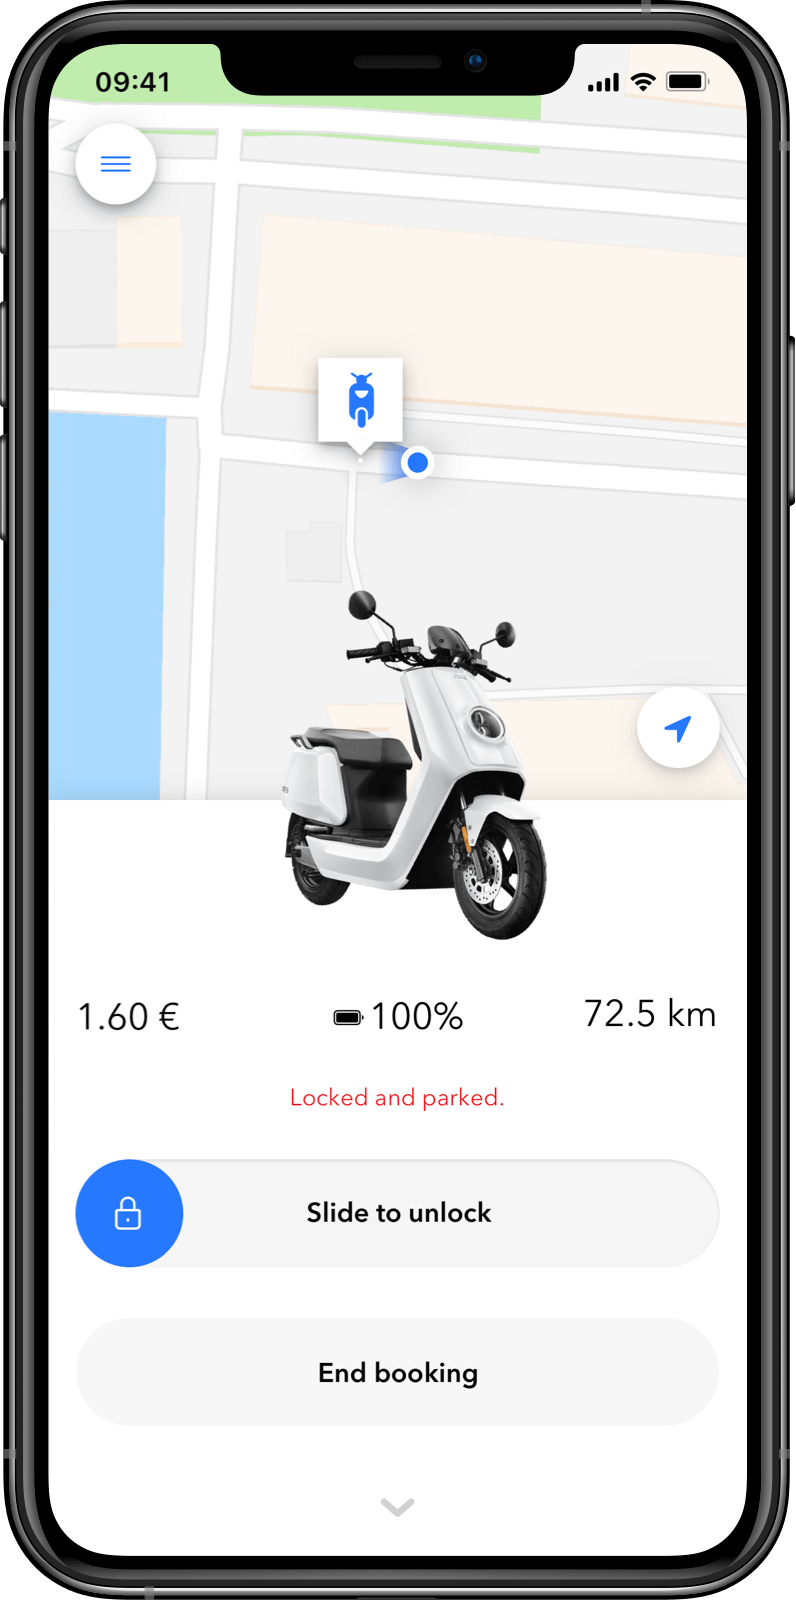 Customer App: park and lock mode